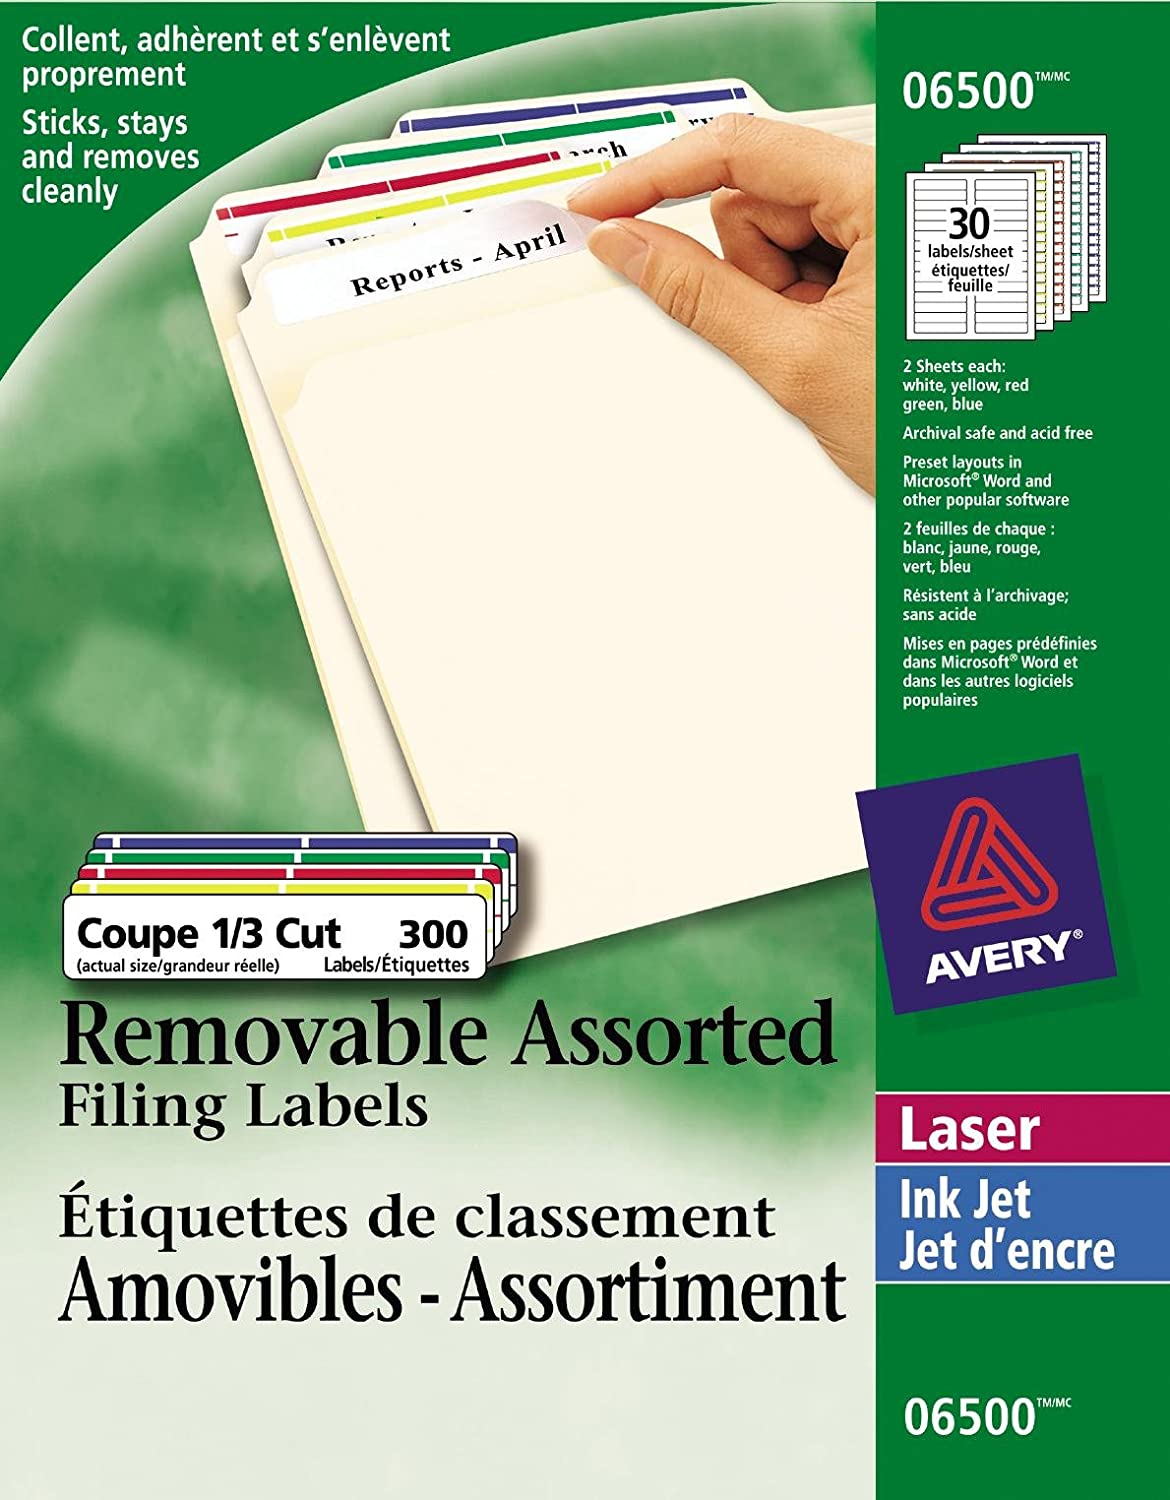 Avery Removable Filing Labels for Laser and Inkjet Printers, 3-7/16 x 2/3, White, Rectangle, 300 Labels, Removable (6505) 3-7/16 x 2/3 67933065056